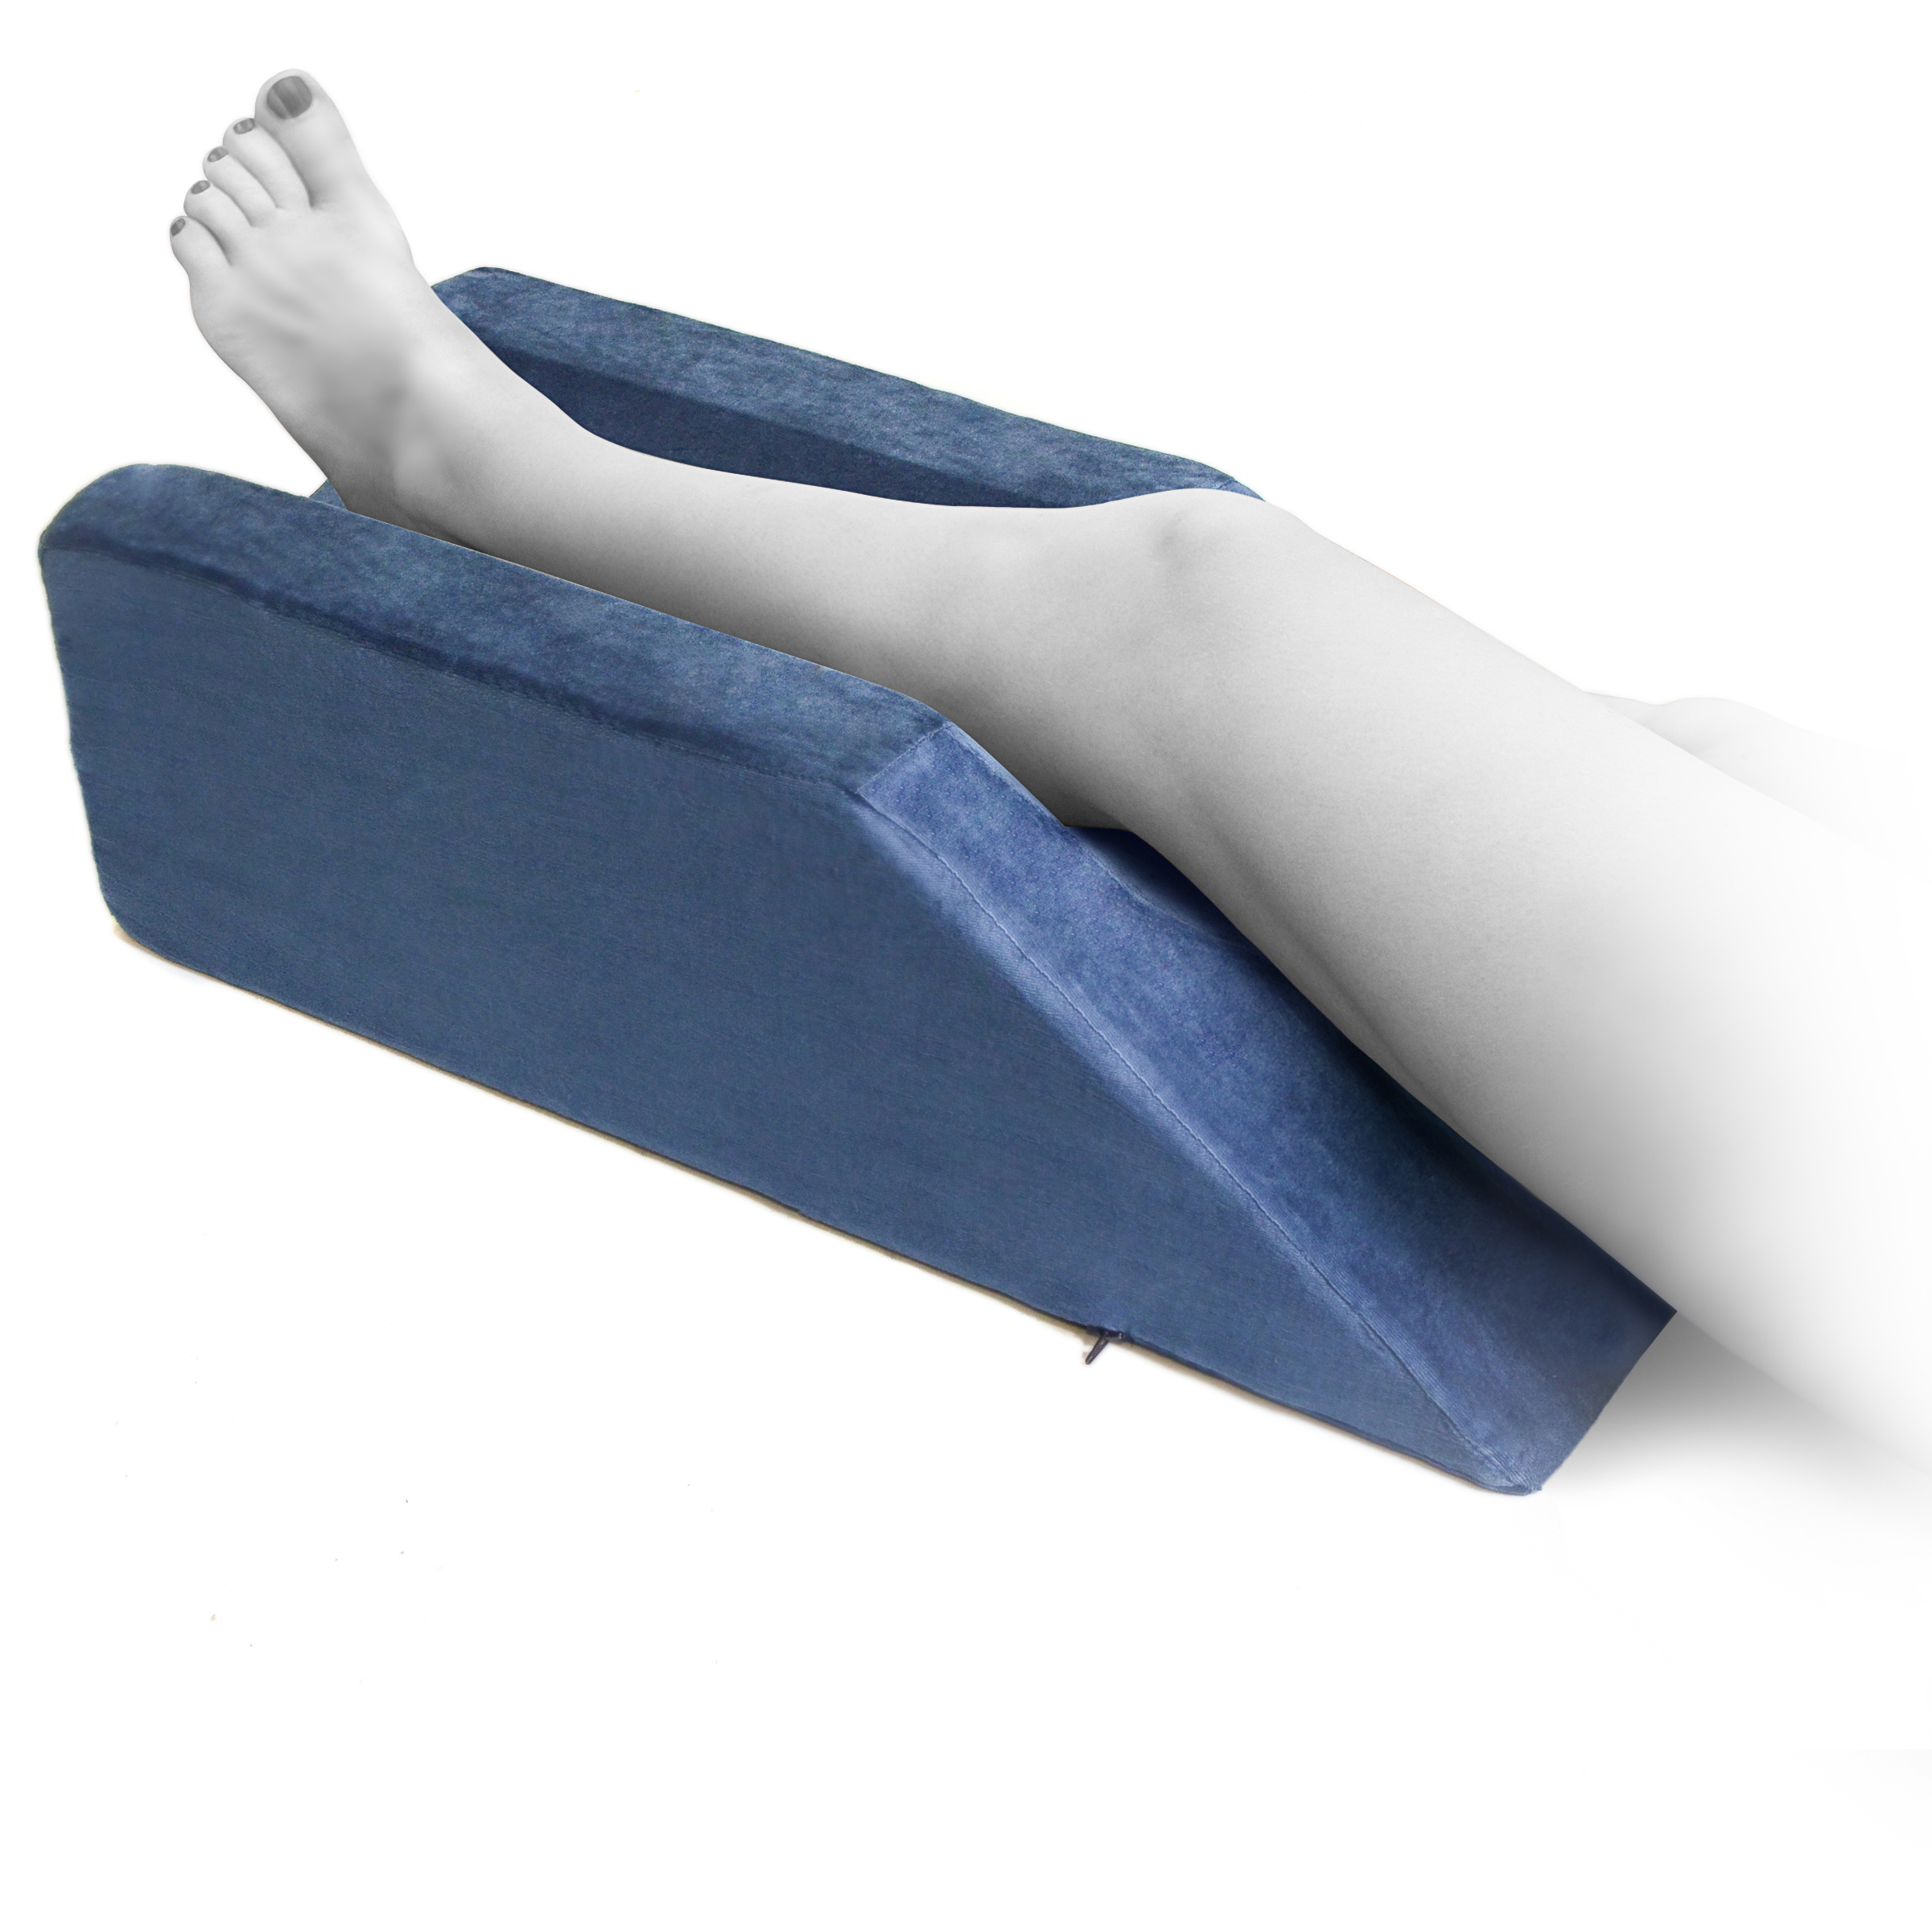 milliard foam leg elevator cushion with washable cover support and elevation pillow for surgery injury or rest